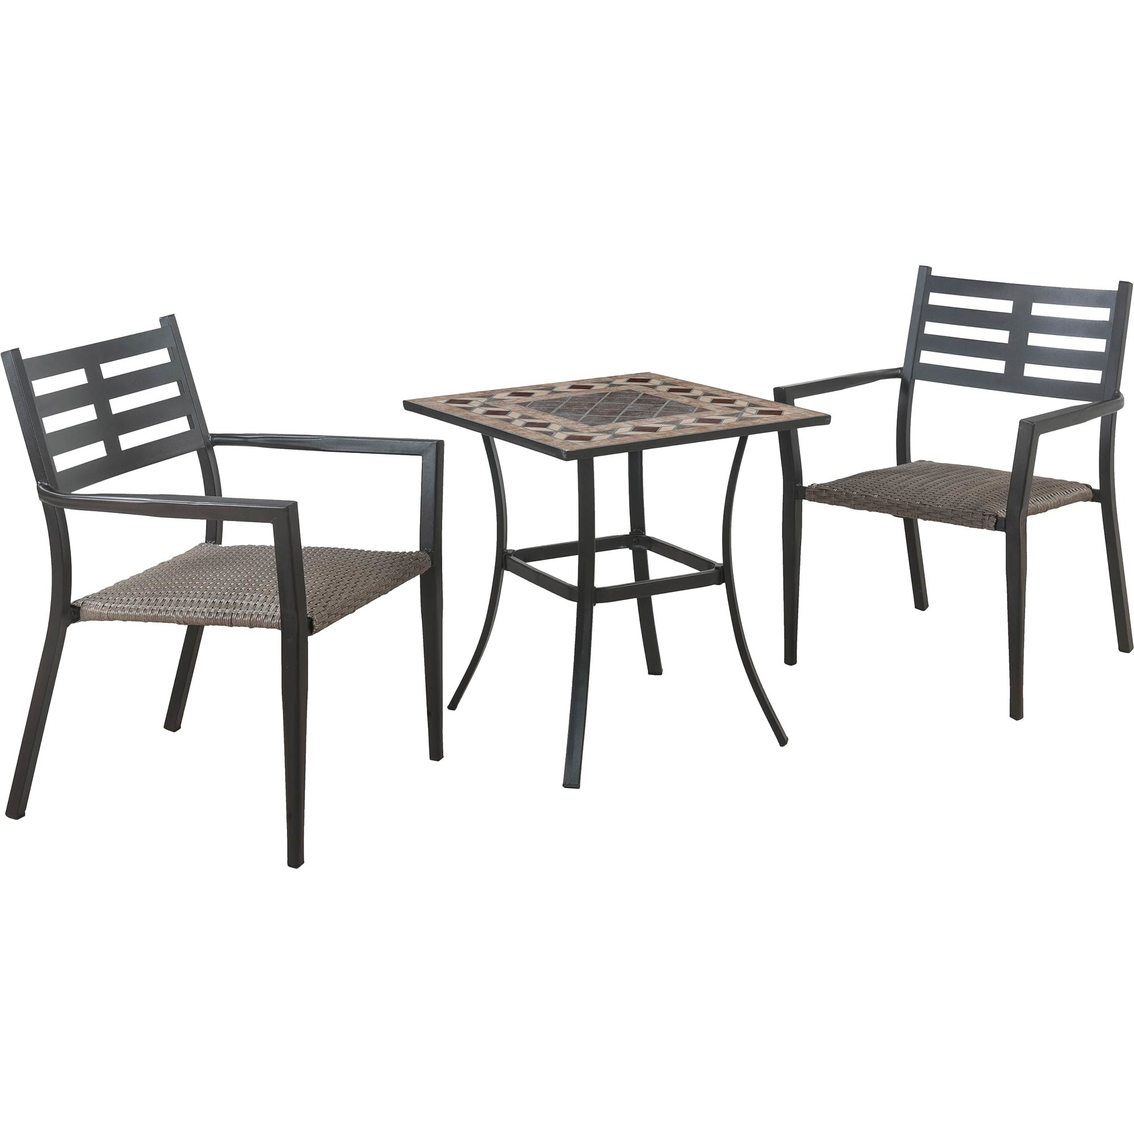 Karsten Creek 3pc Patio Bistro Set